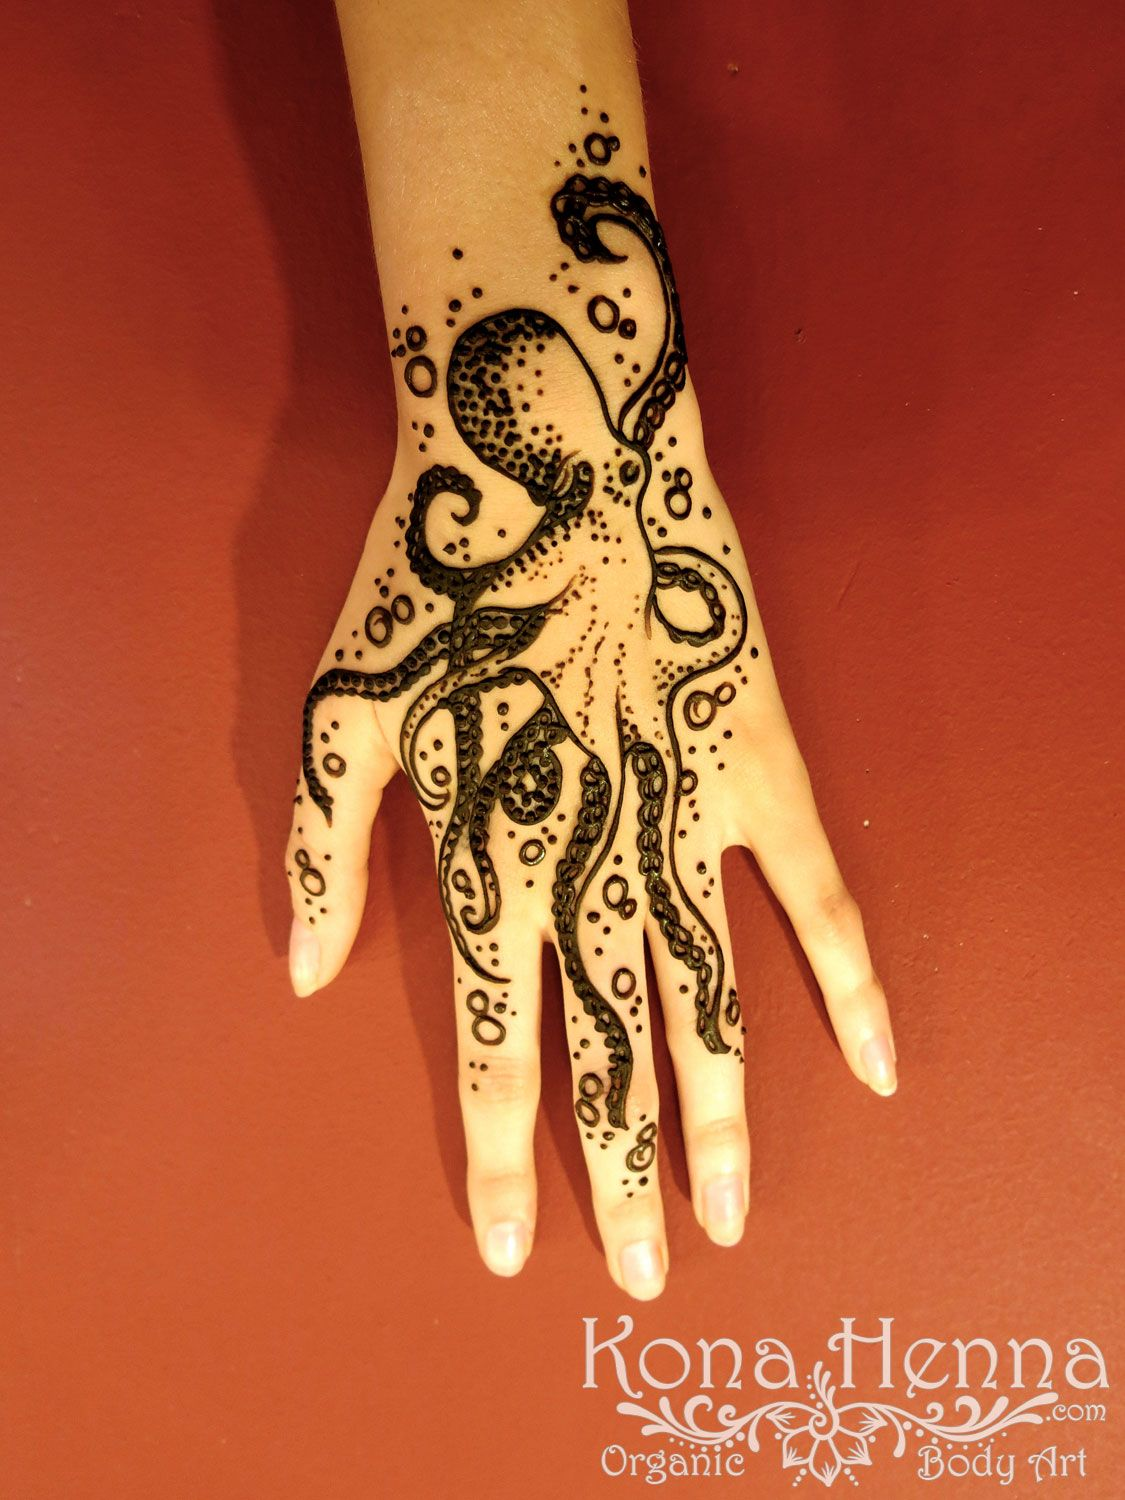 Animal Hands Tattoos : animal, hands, tattoos, Henna, Gallery, Hands, Tattoo, Designs,, Inspired, Tattoos,